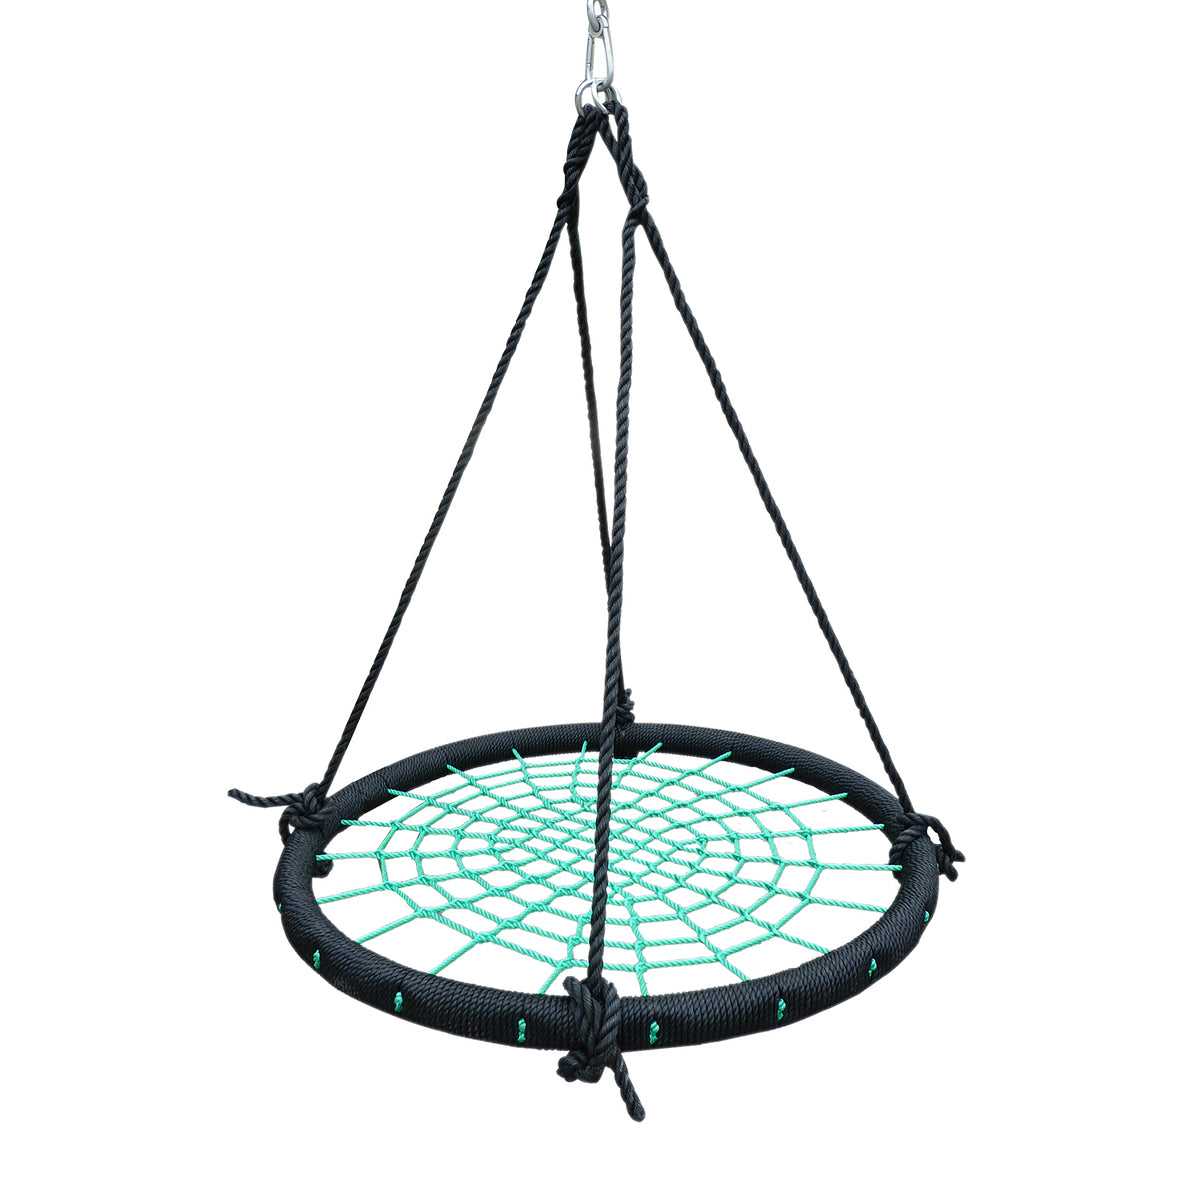 Lifespan Kids Spidey 2 Web Swing 100cm